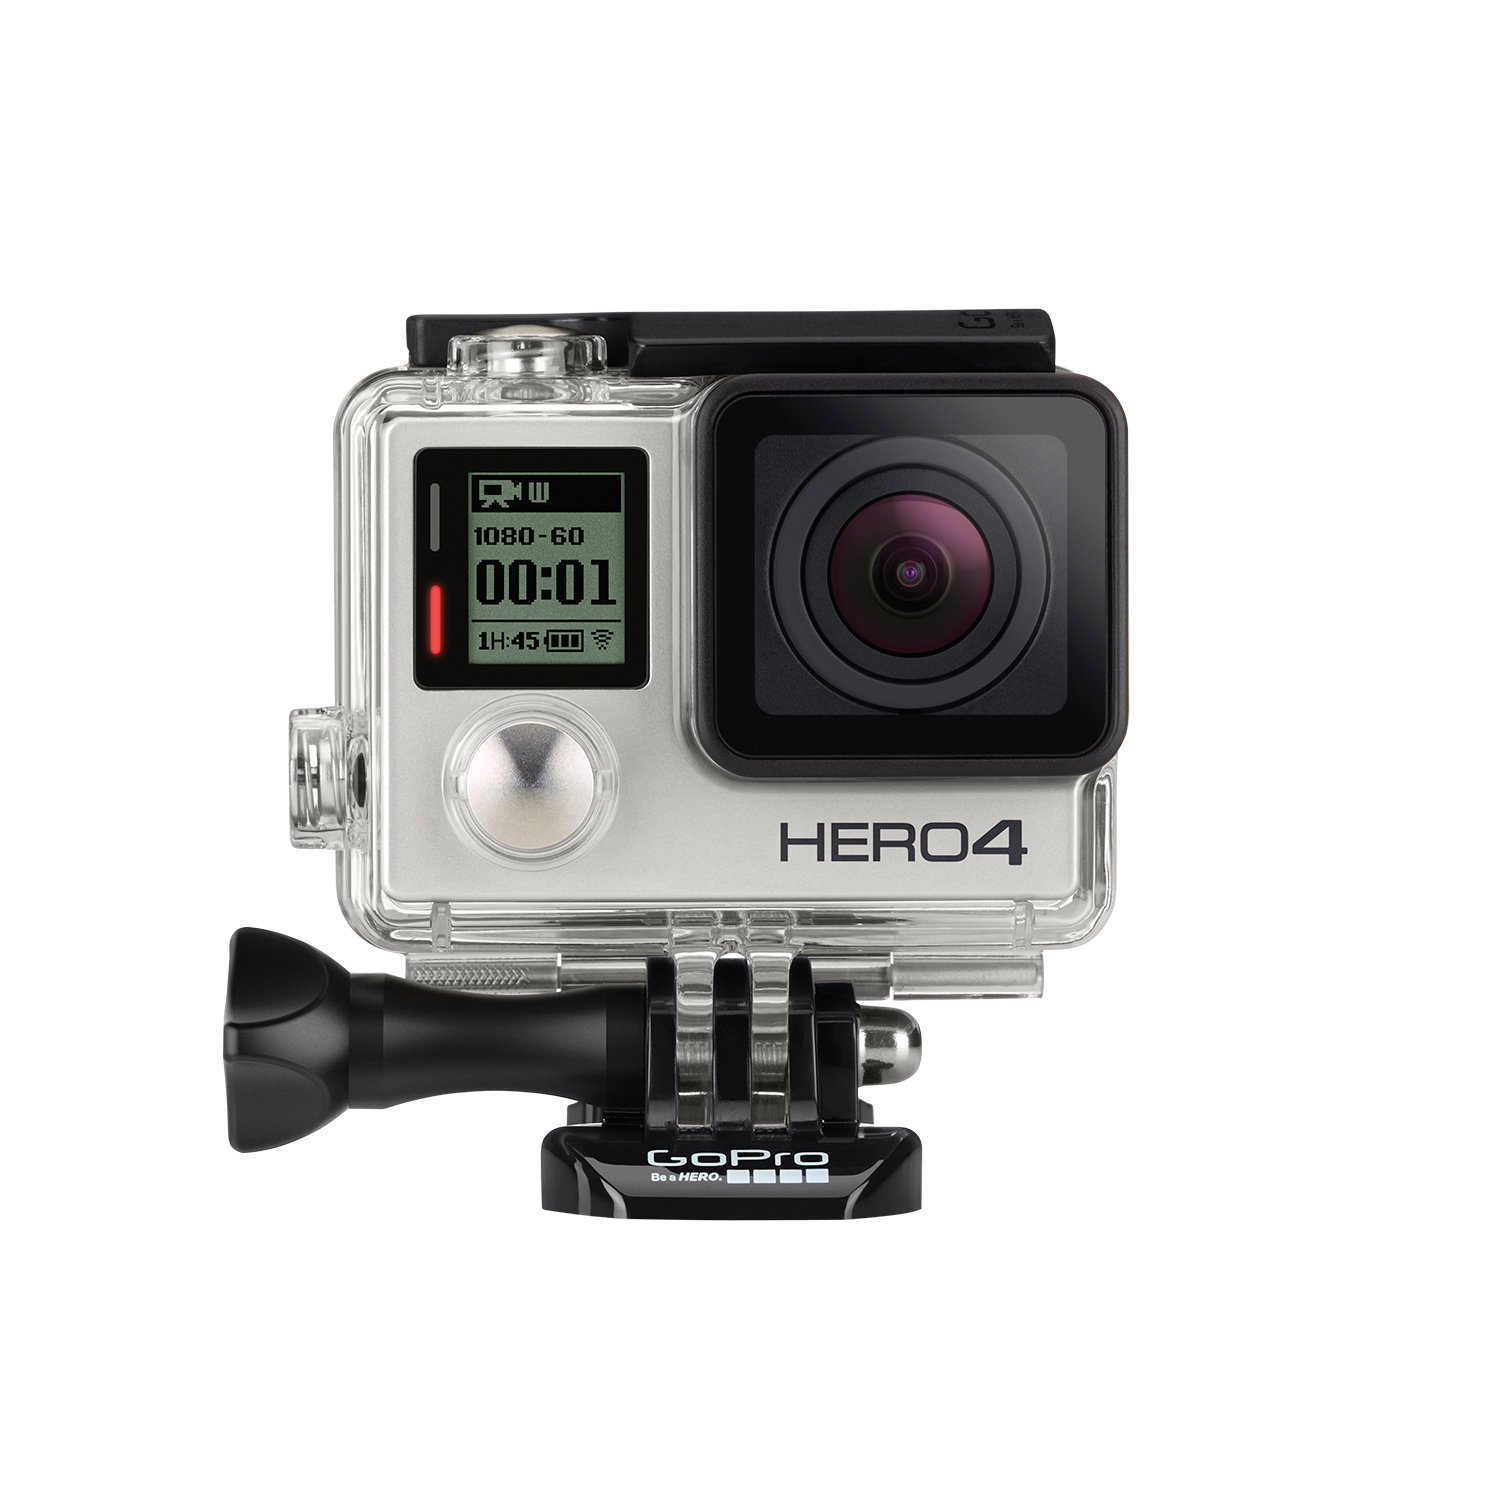 GoPro waterproof camera